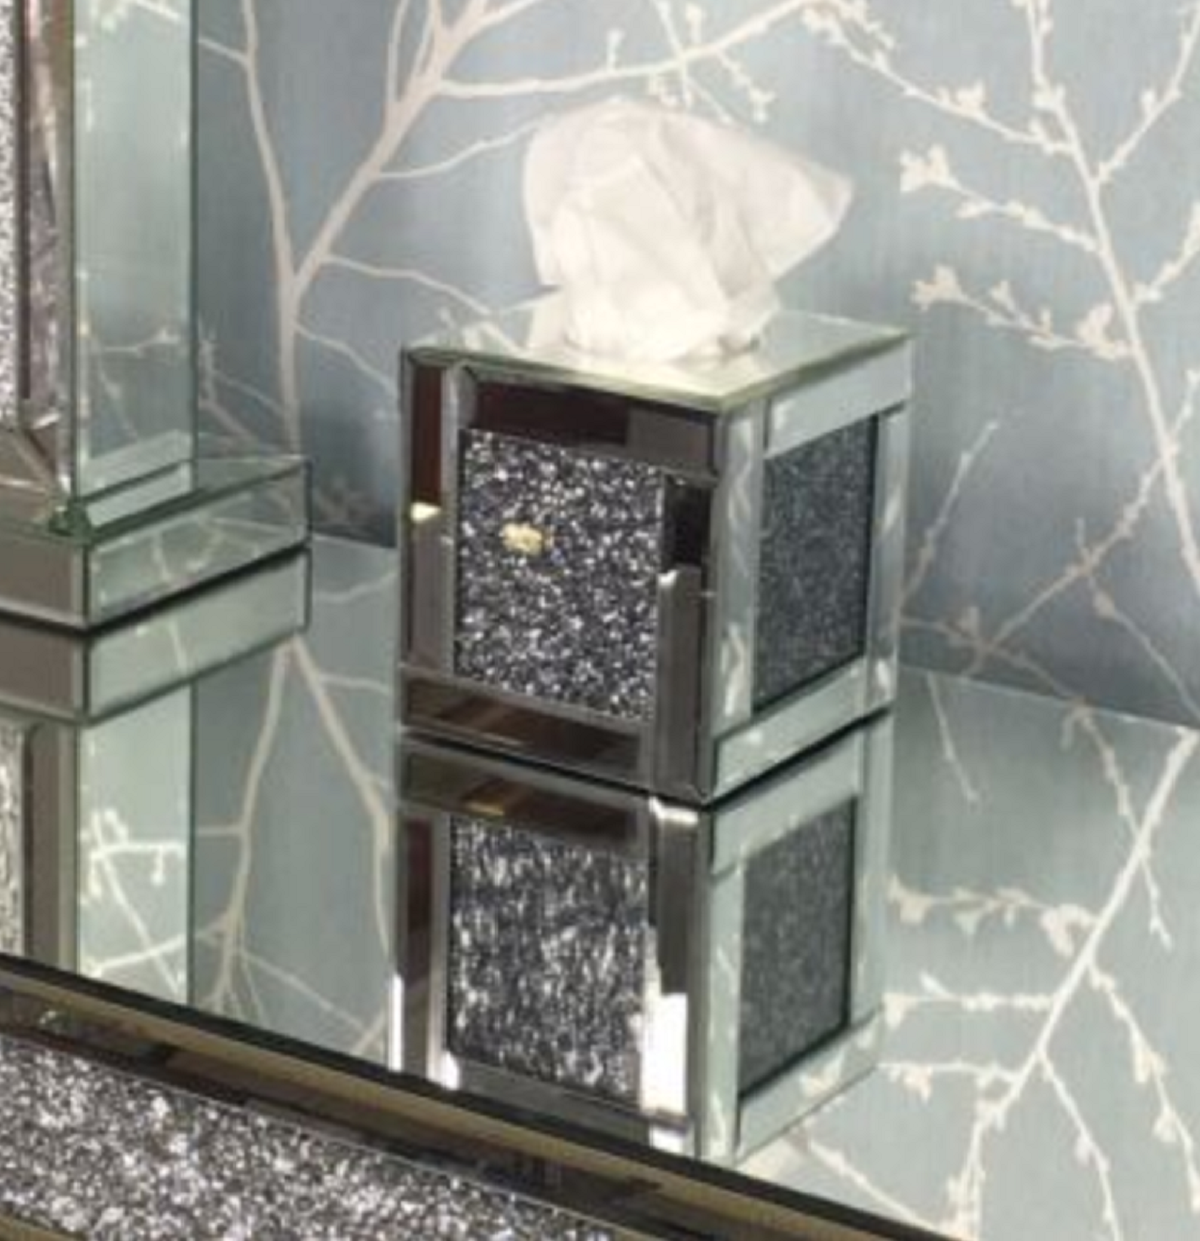 Tuscany Mirrored Tissue Box With Swaroski Crystals Cube